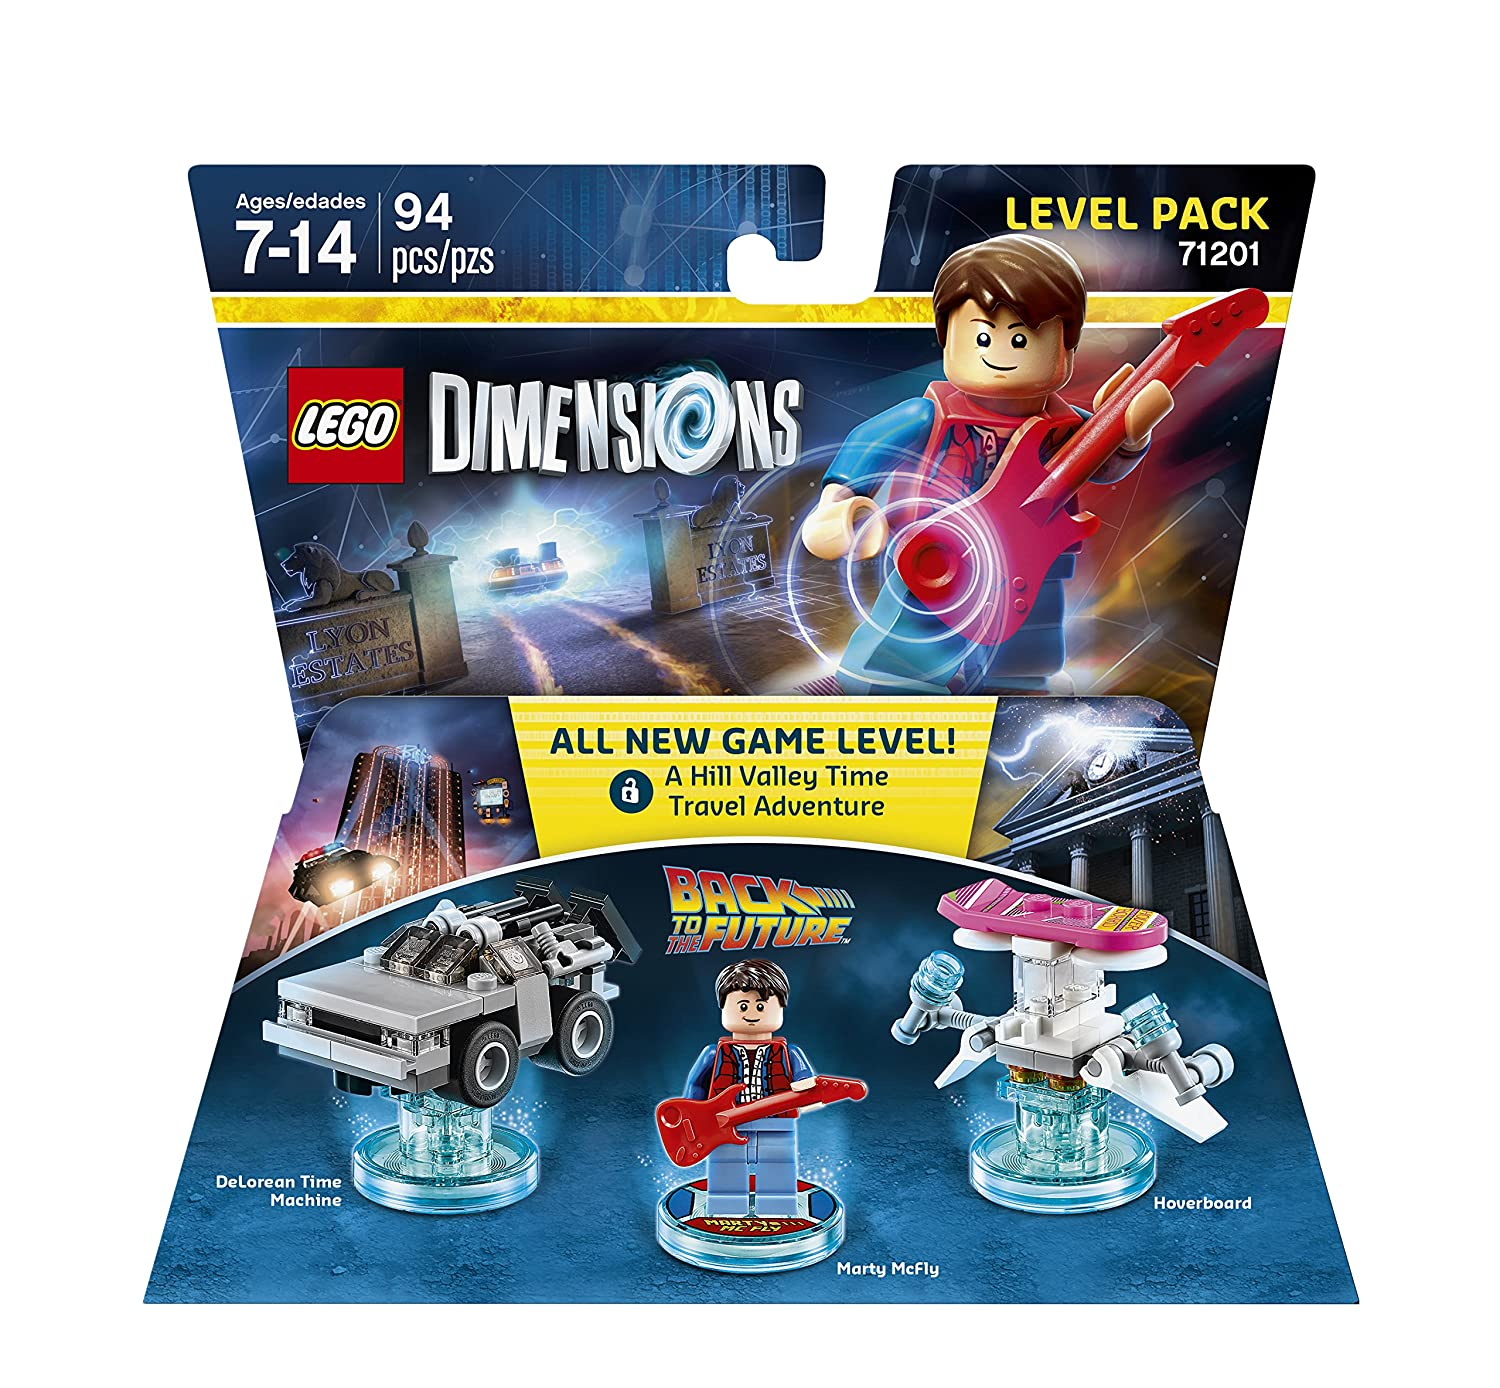 Lego Dimensions Building Instructions To Be Available For Everyone